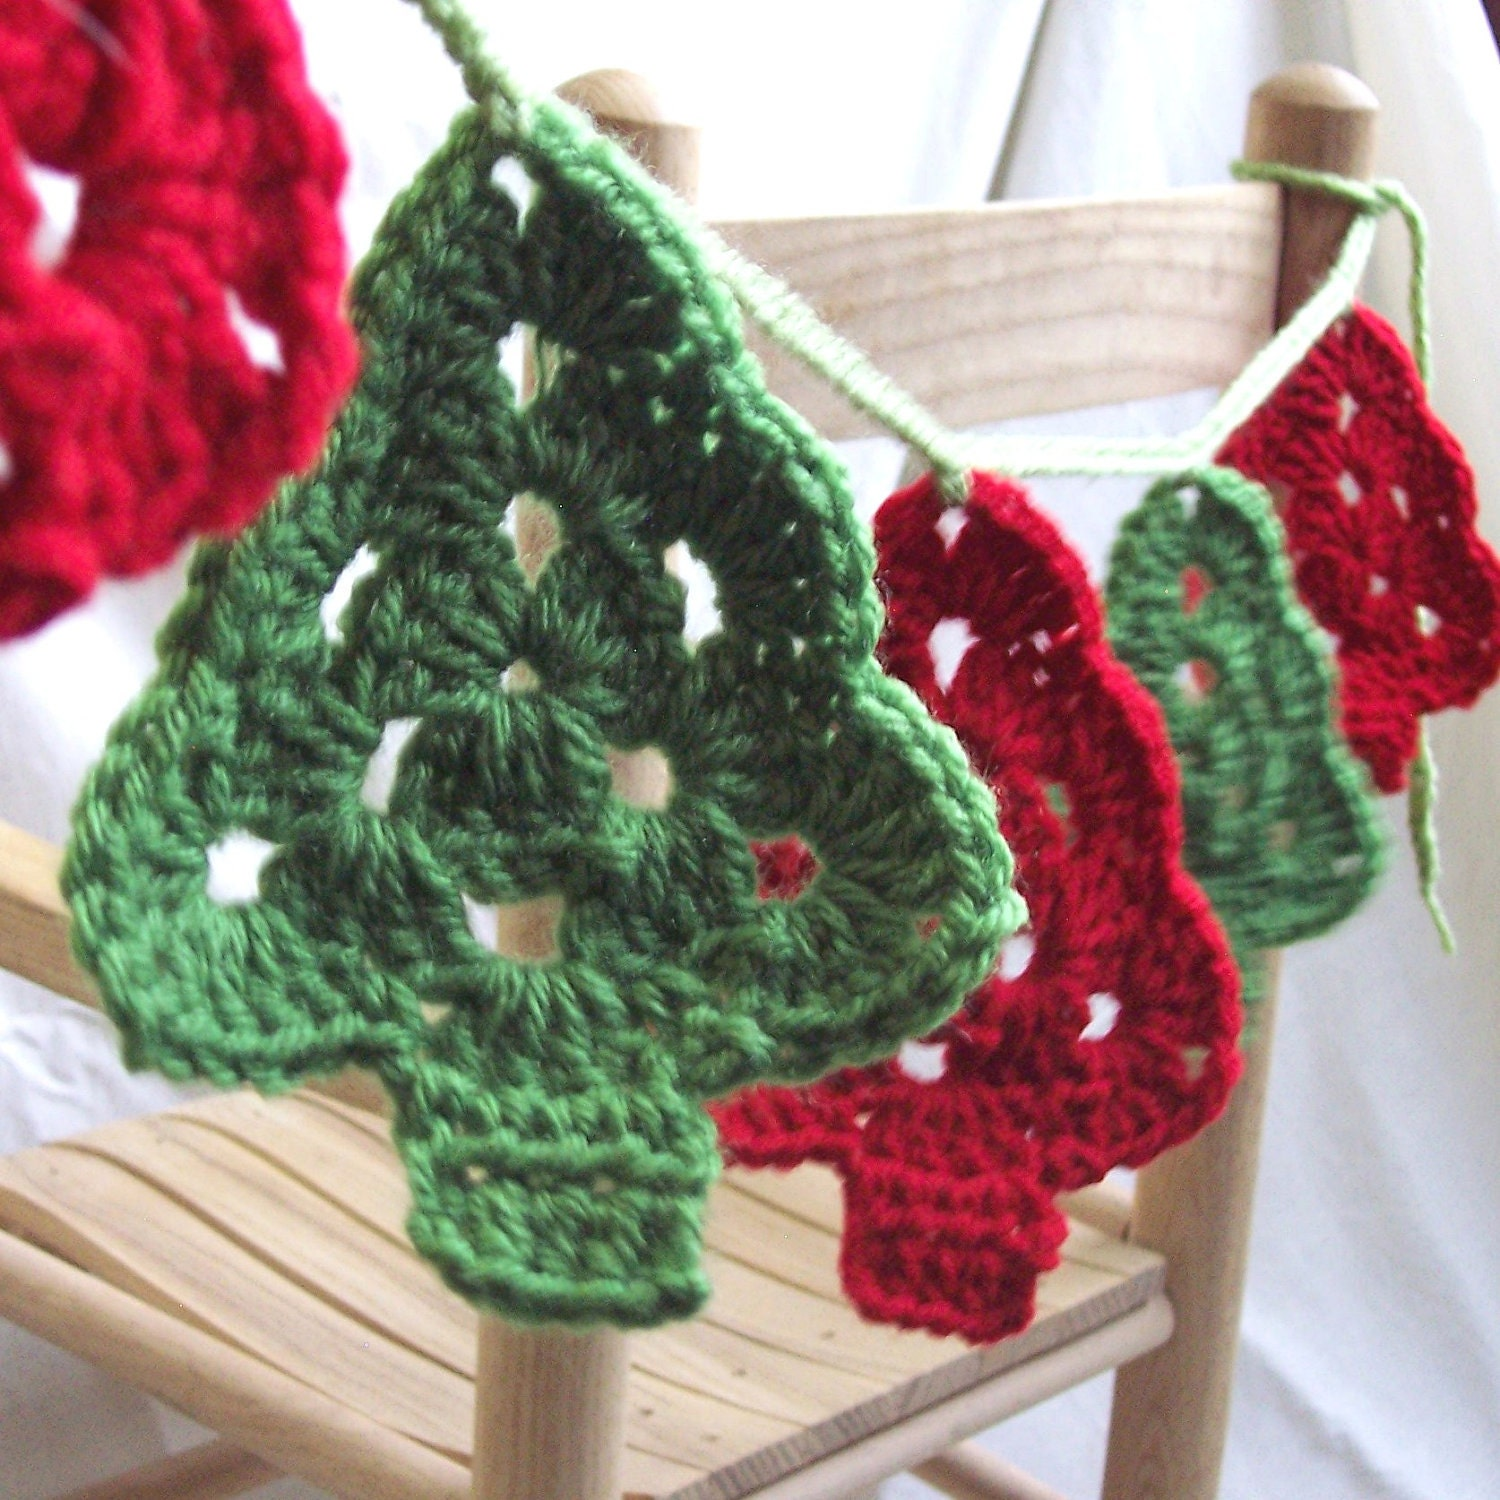 Free Crochet Patterns For Xmas Trees : Christmas Trees Crochet Garland Granny Tree by ThePrairieCottage